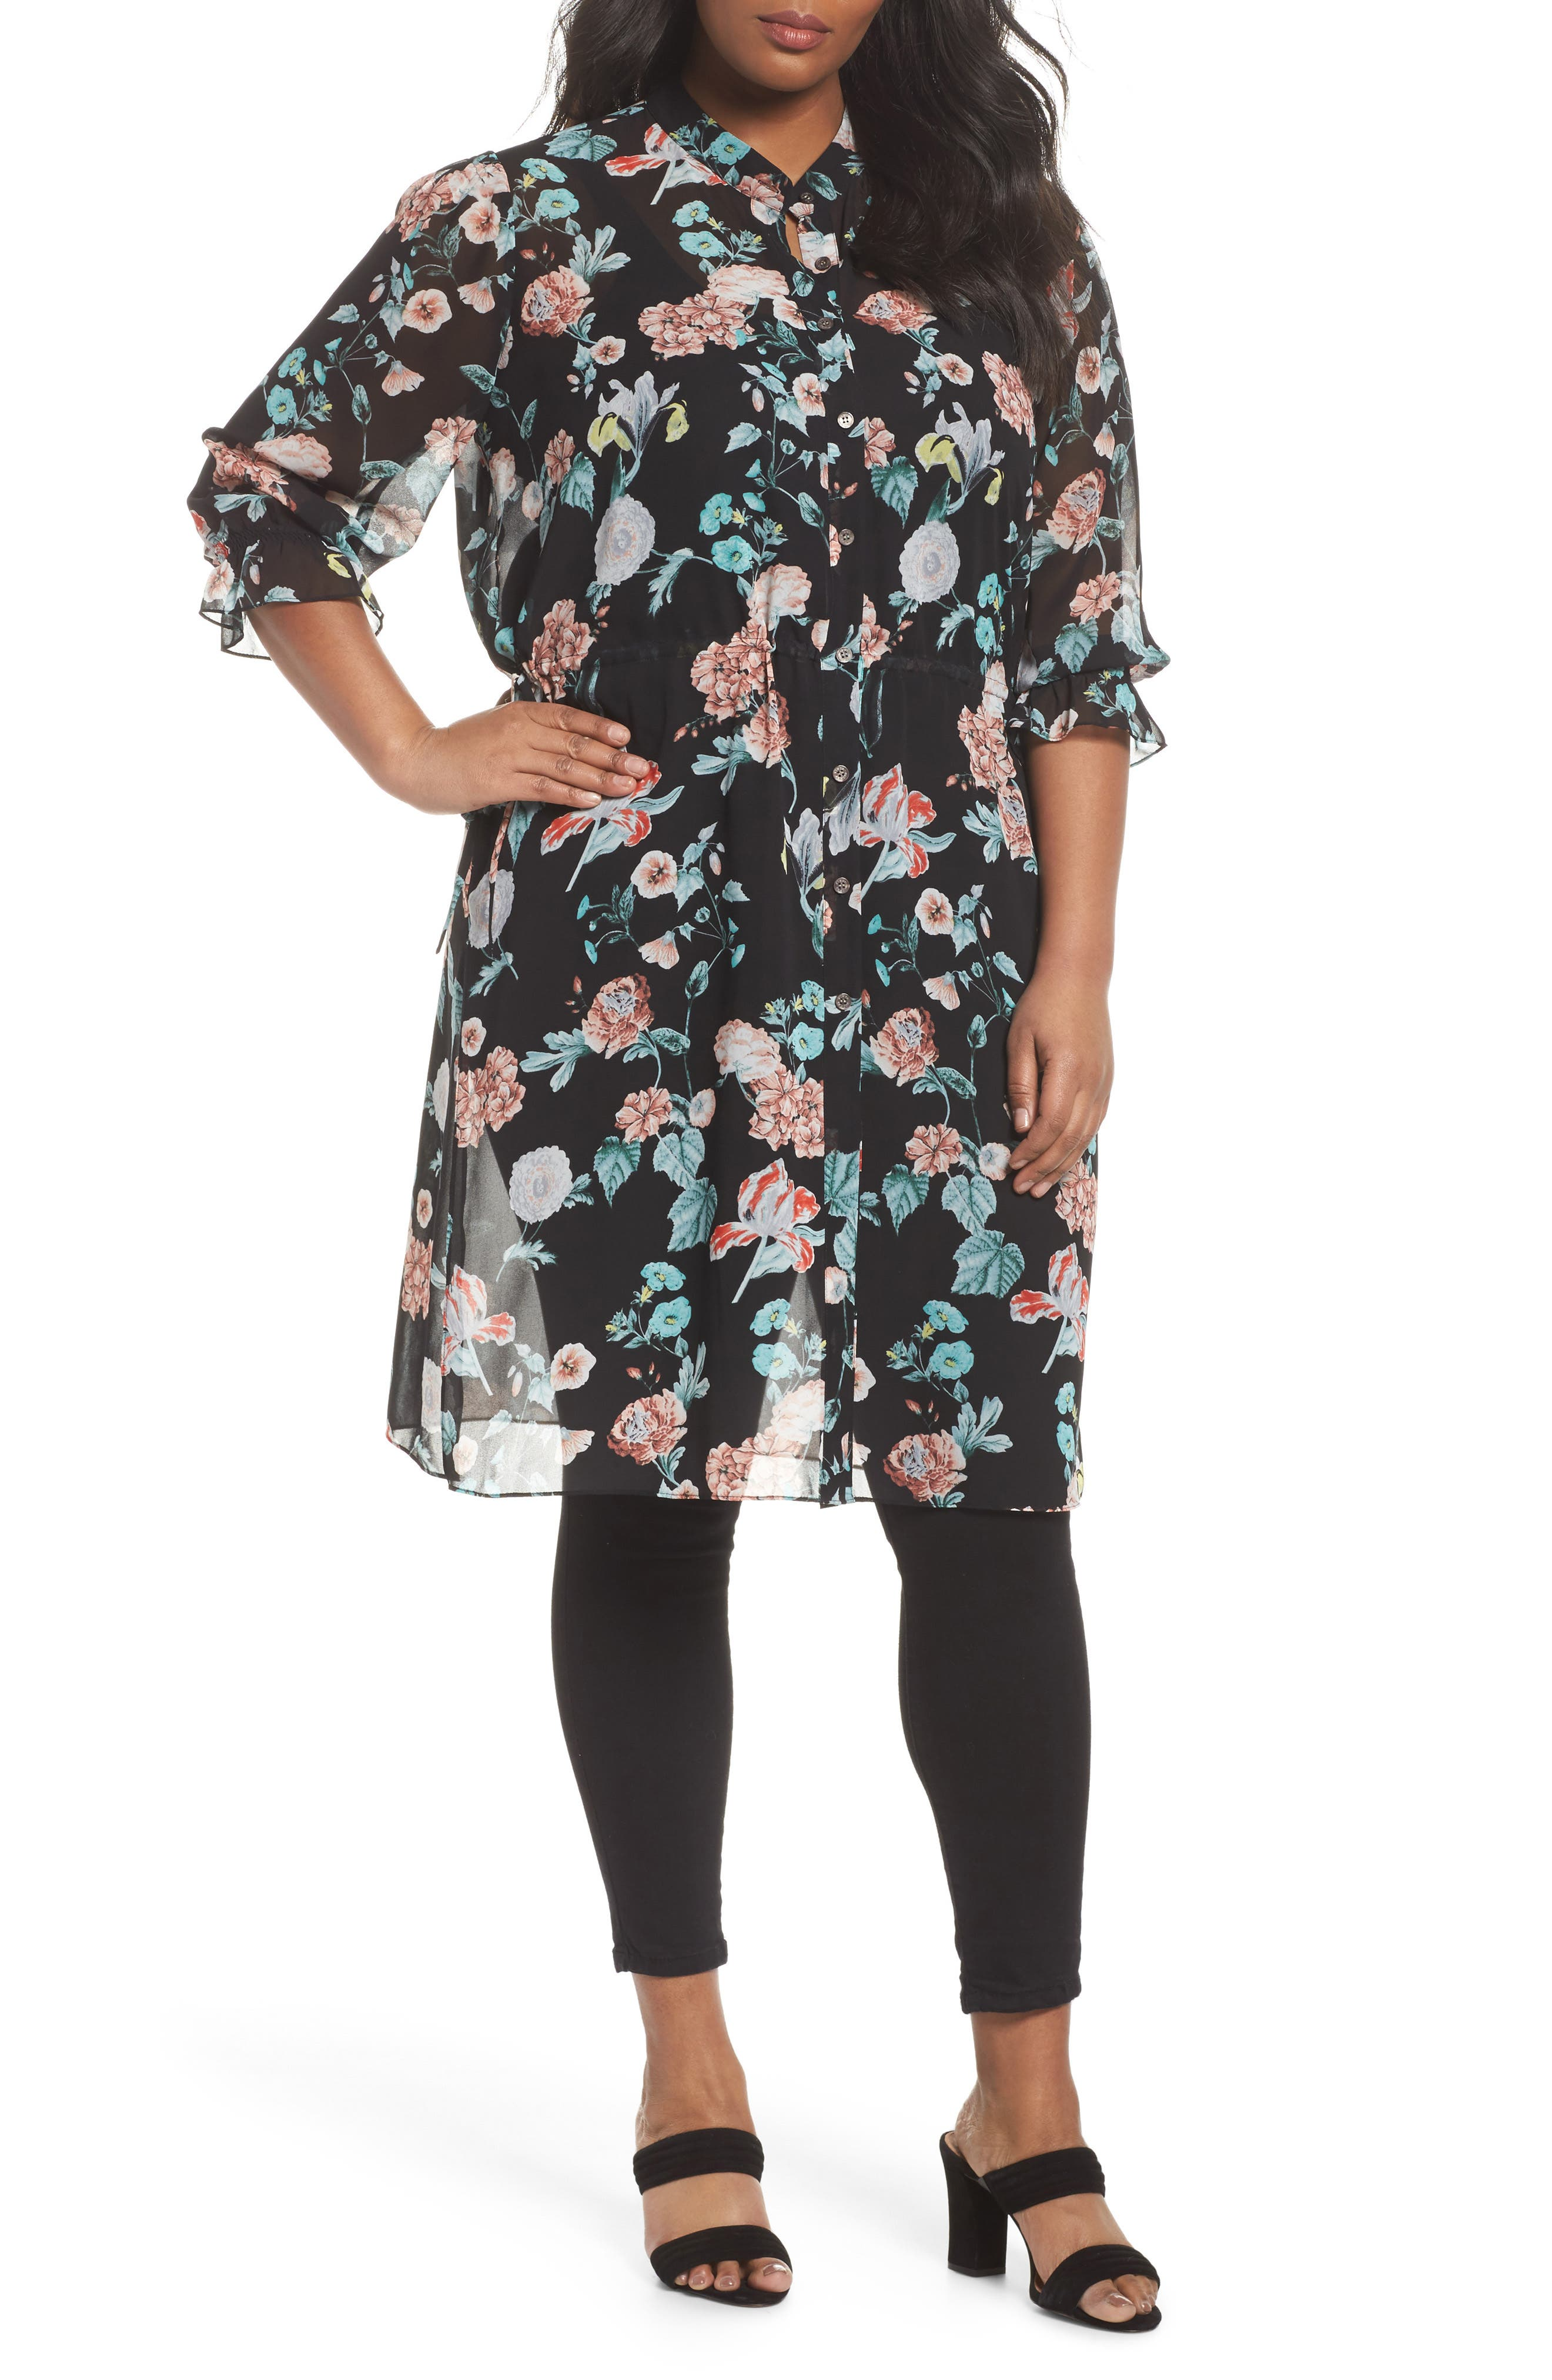 Vince Camuto Faded Blooms Tunic Dress (Plus Size)